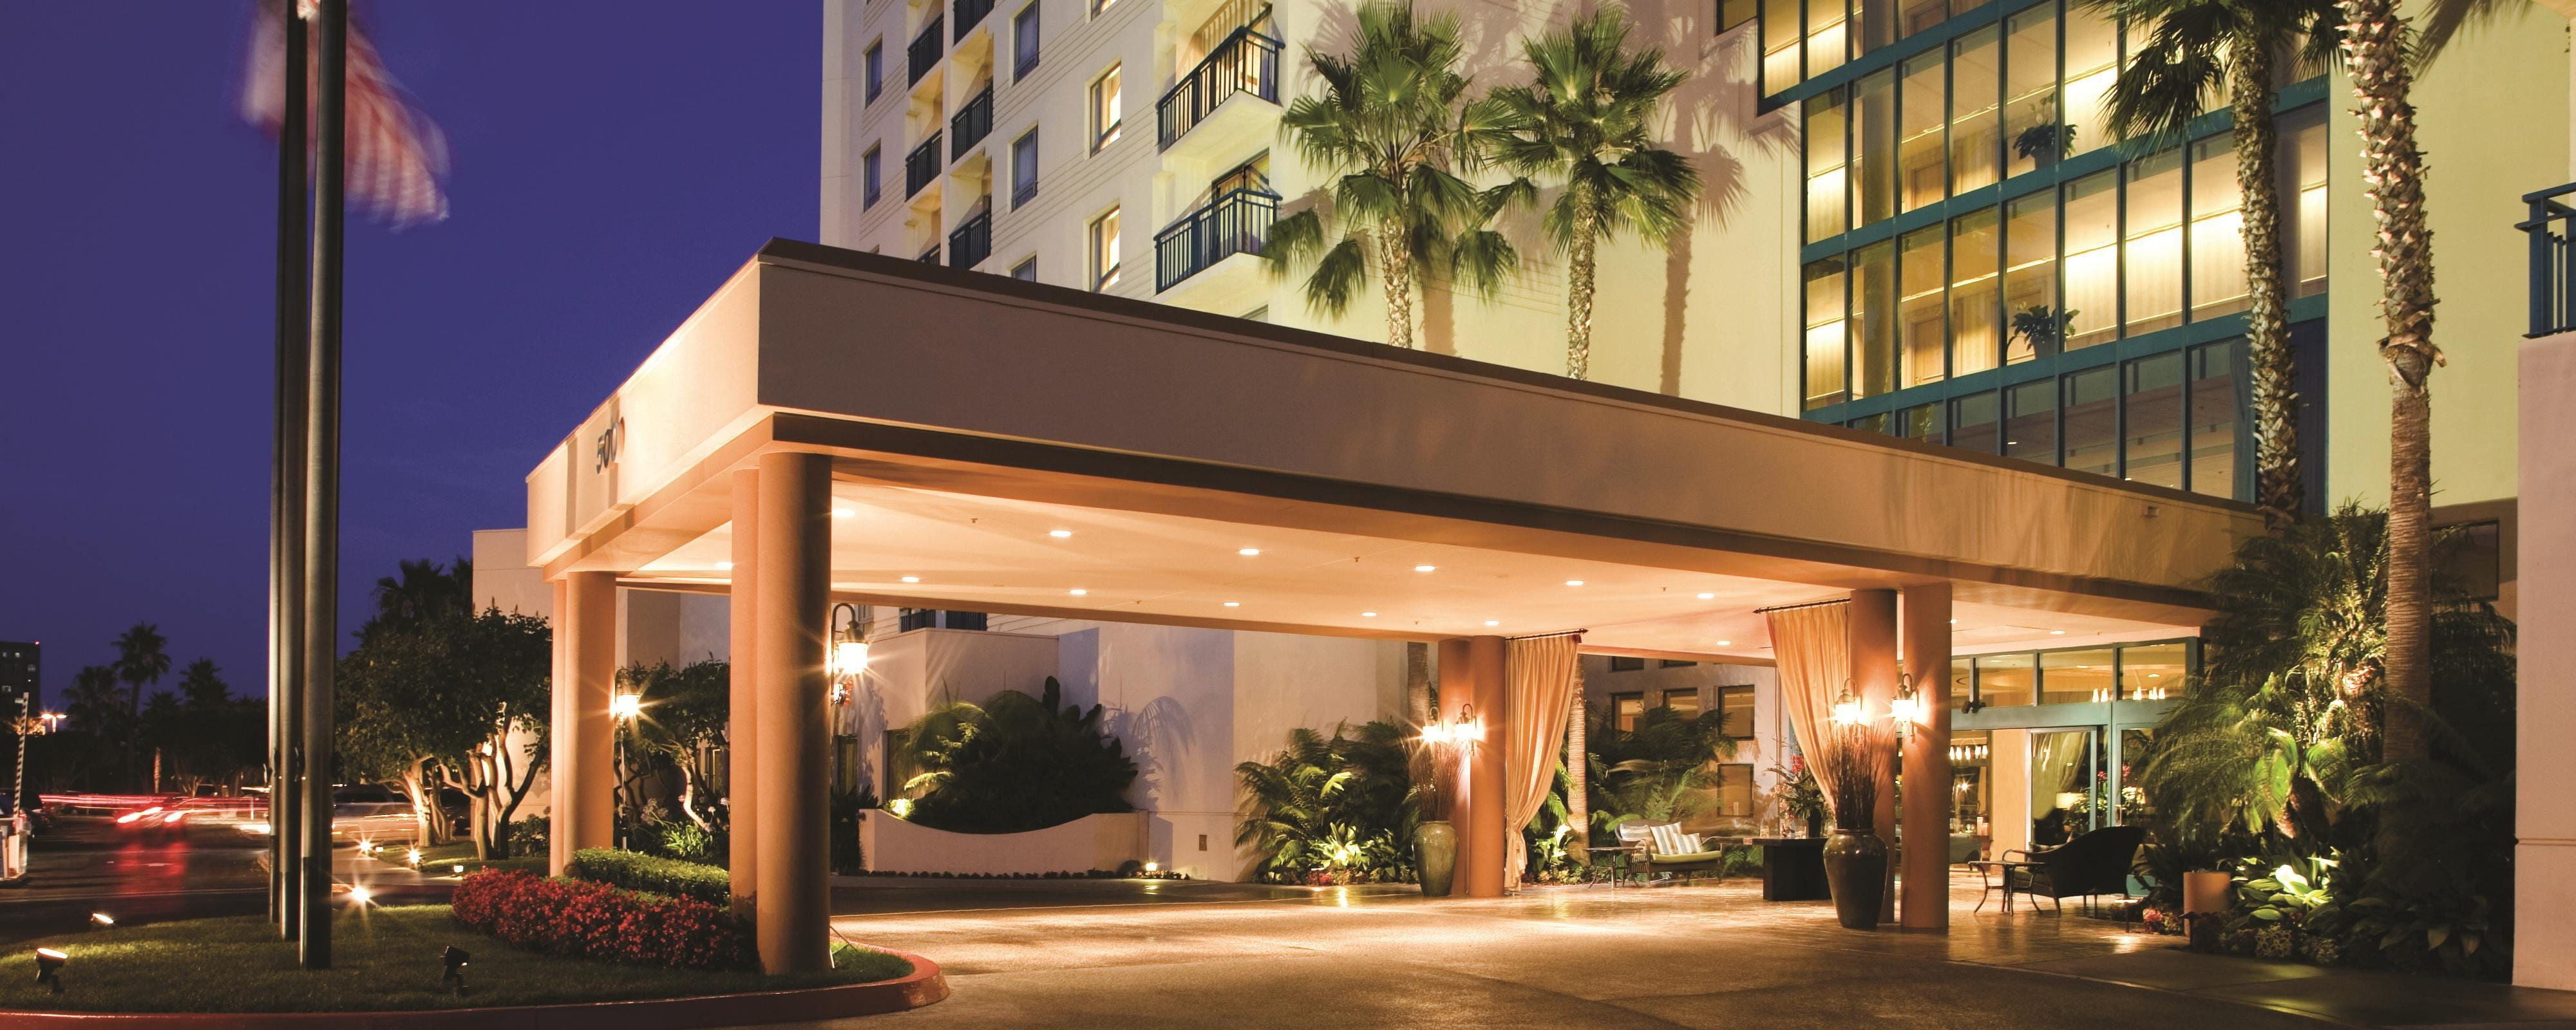 Newport Beach, CA Hotel | Newport Beach Marriott Bayview